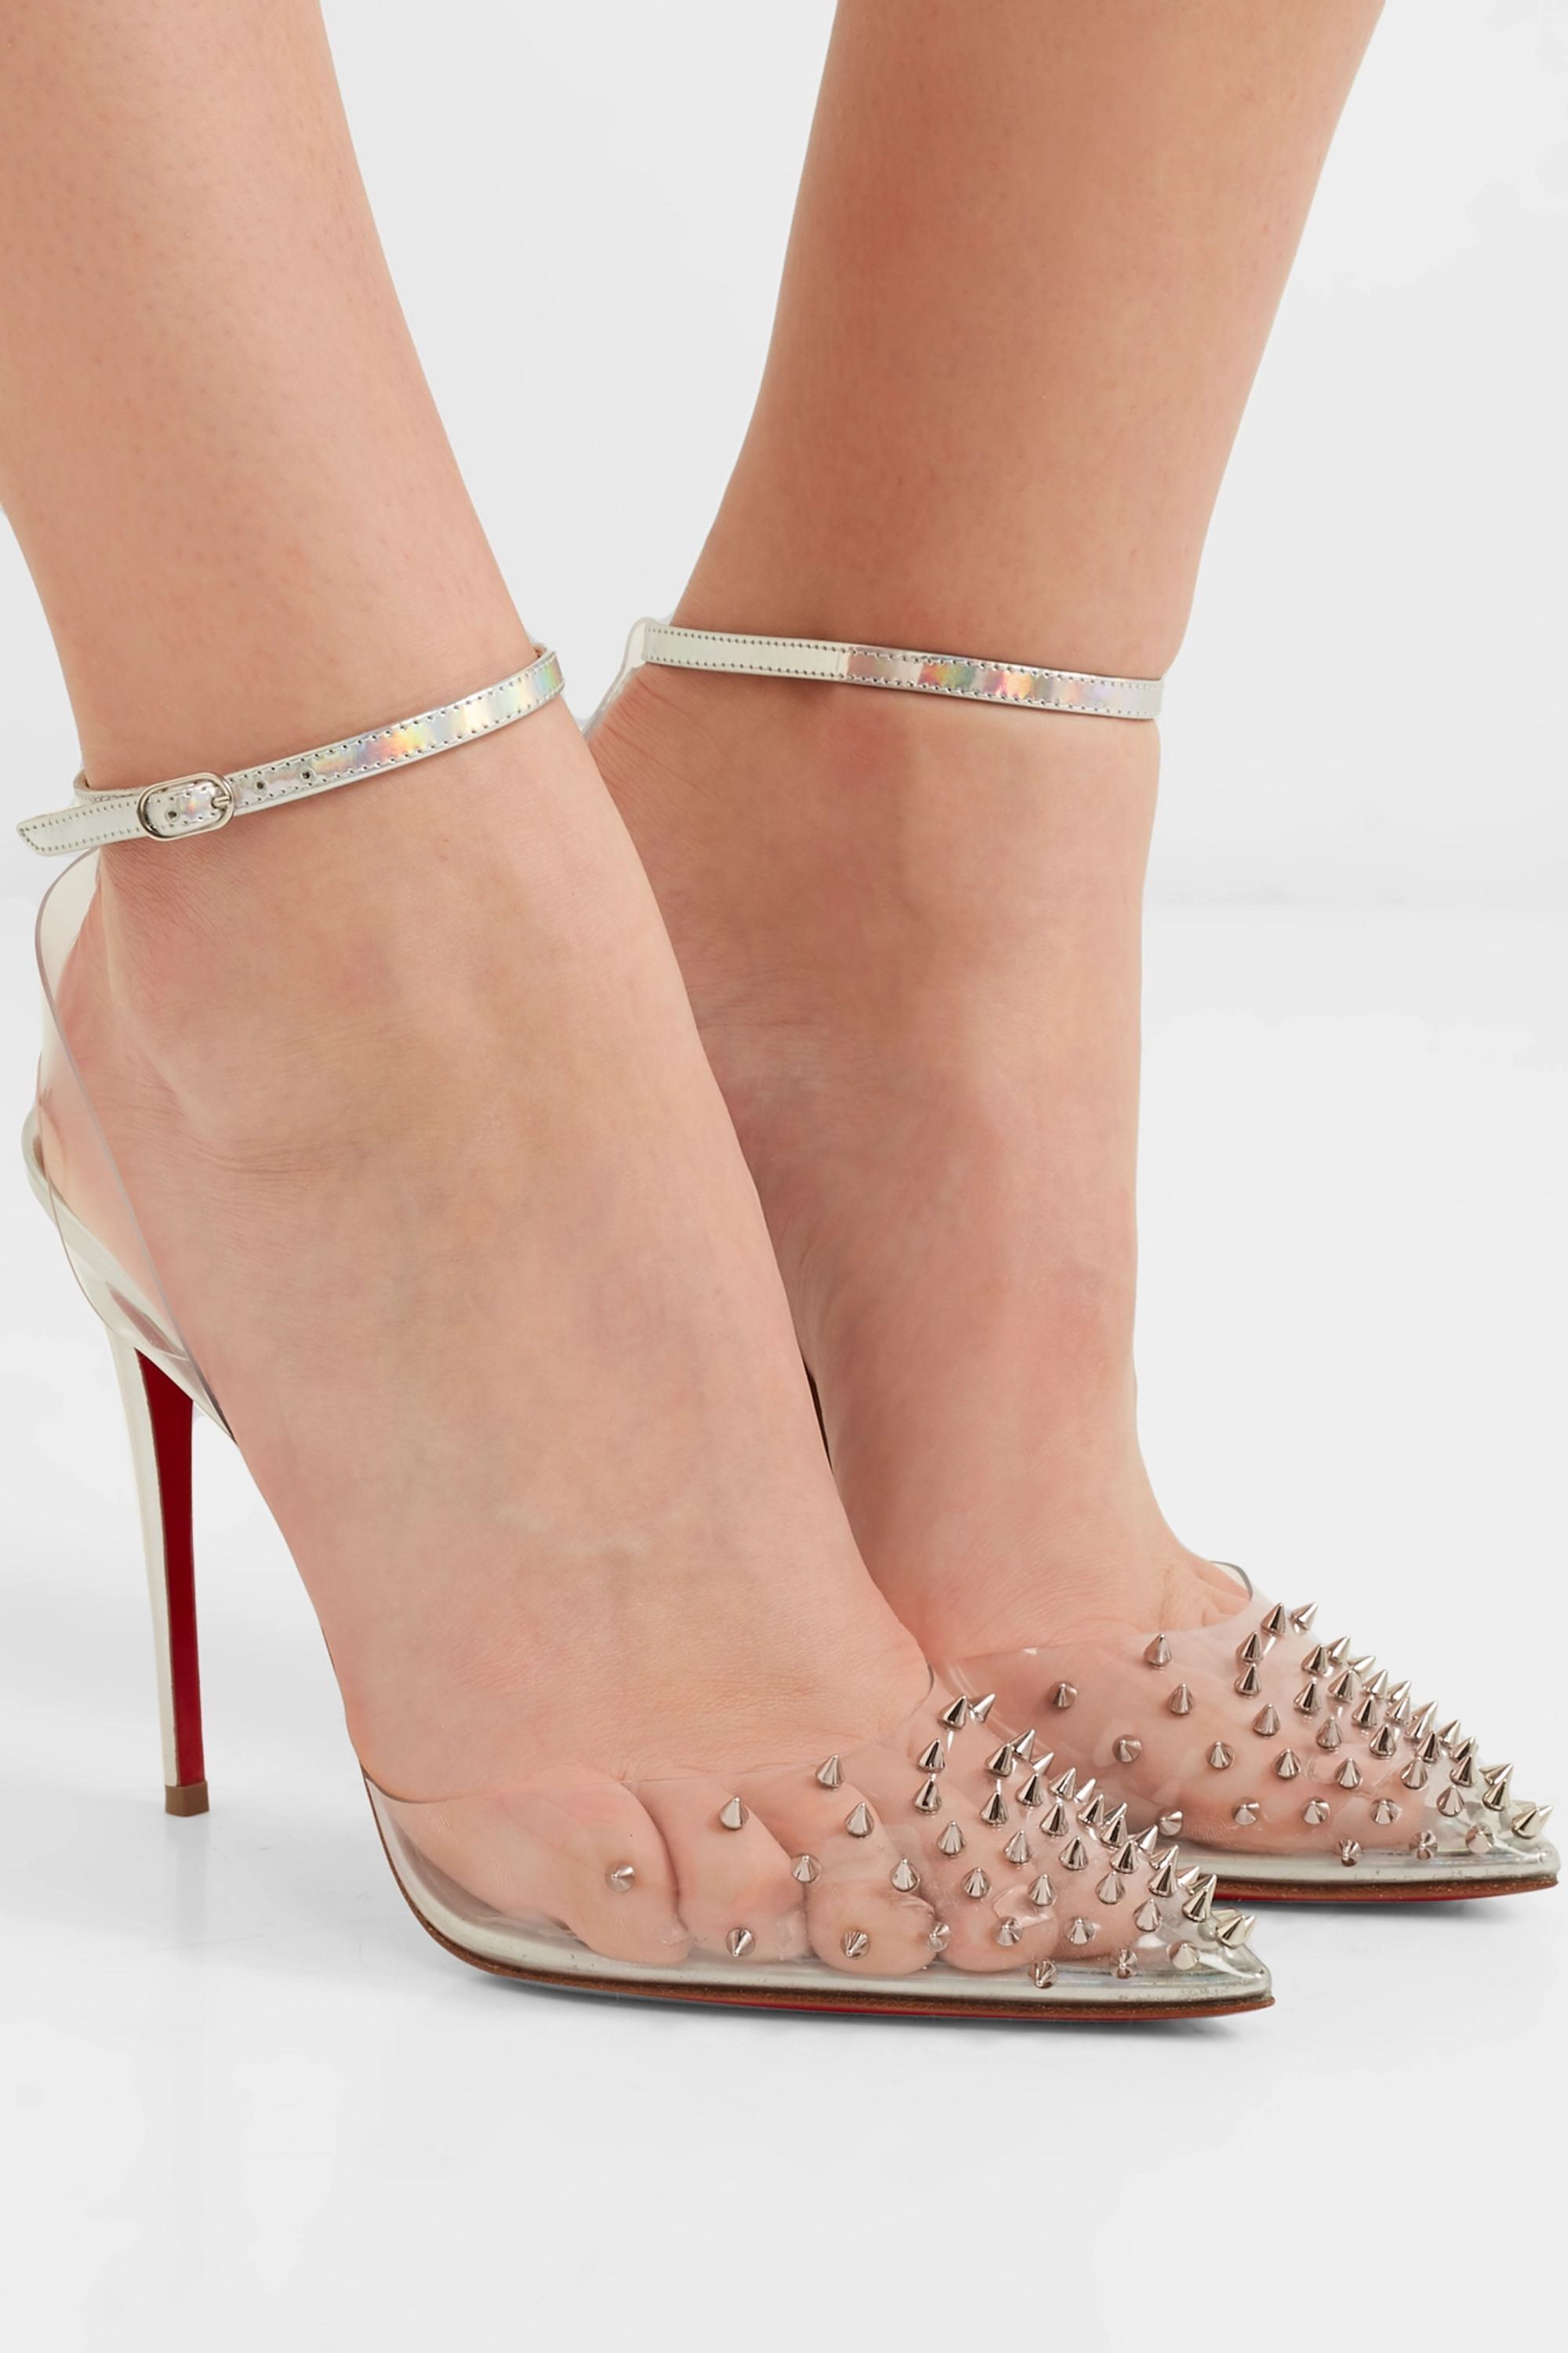 Christian Louboutin Spikoo 100 spiked PVC and iridescent leather pumps